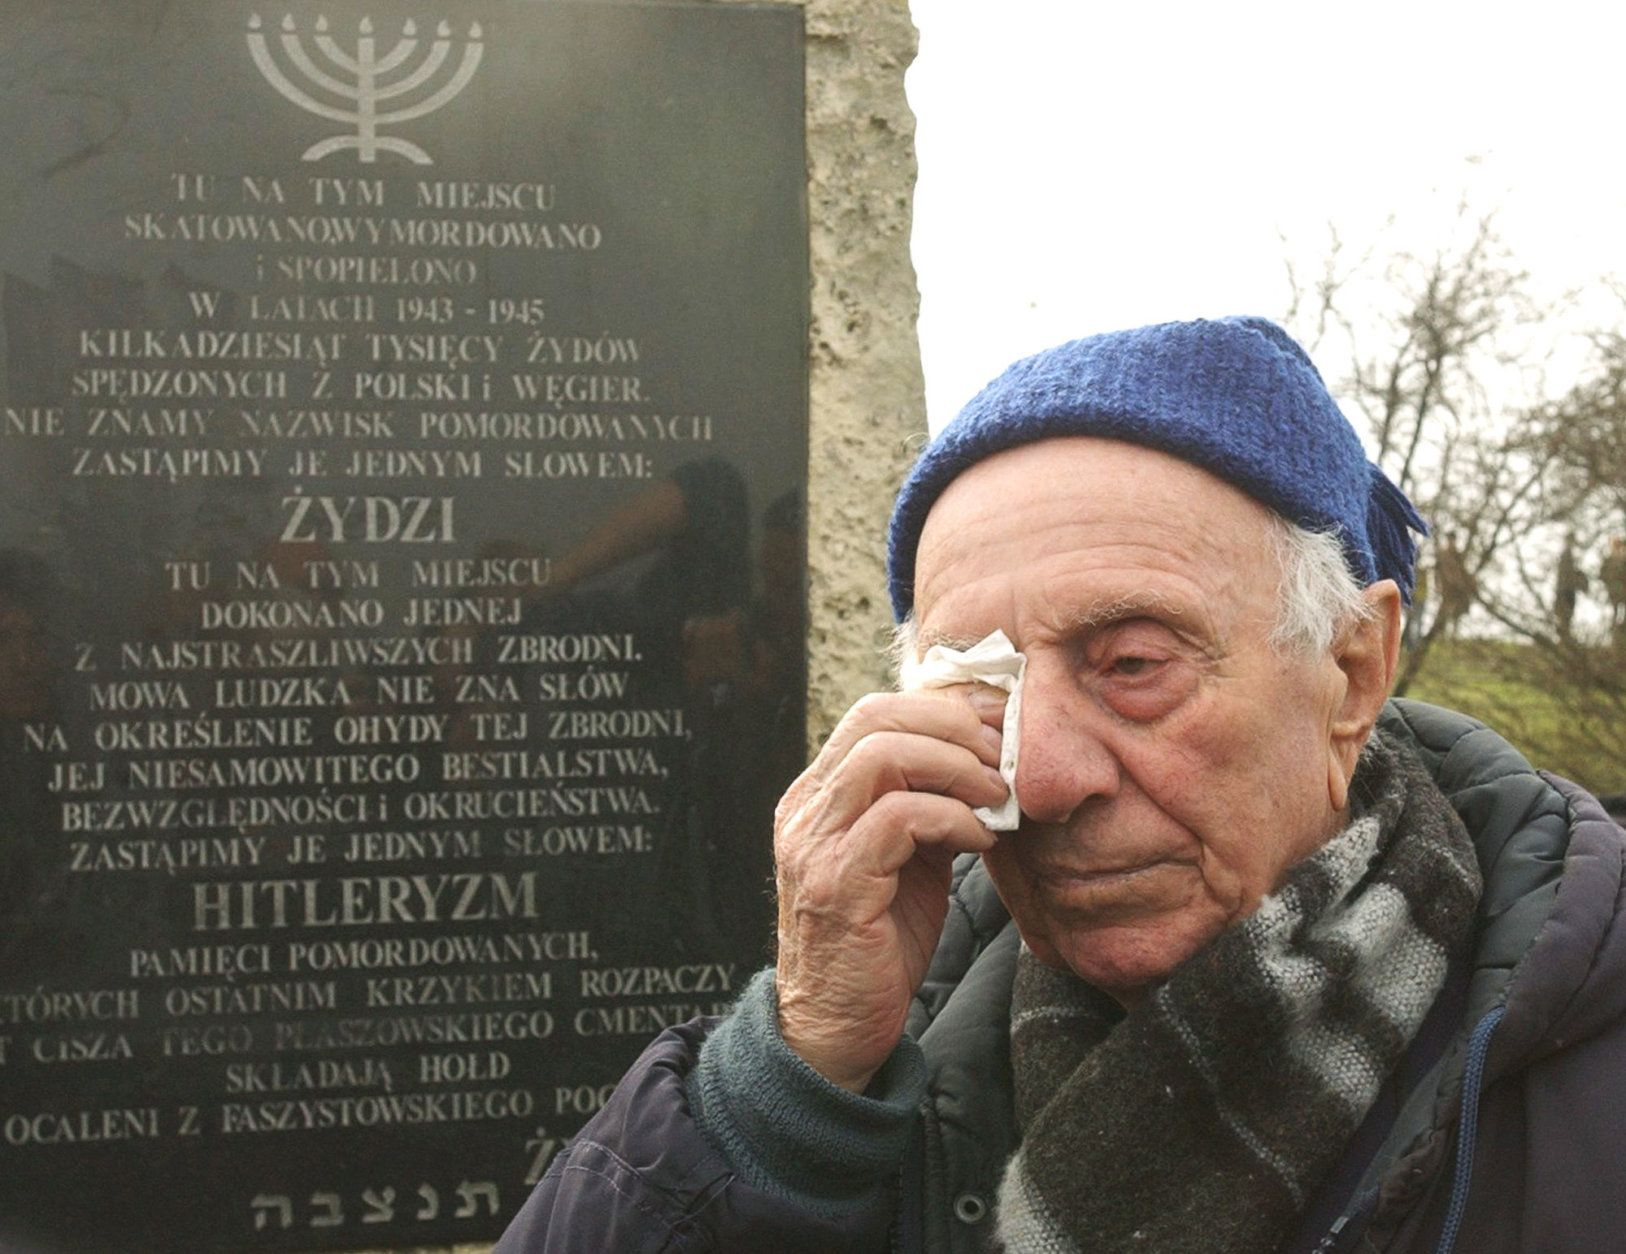 Ludwik Kuczer, 87, one of the Jews saved by German industrialist Oskar Schindler, wipes a tear during a ceremony at a monument in the former Nazi camp in Plaszow, district of  Krakow, southern Poland, Sunday, March 16, 2008, to mark the 65th anniversary of the liquidation of the Krakow Ghetto. In just two days in March 1943, German soldiers emptied the ghetto of its estimated 16,000 Jewish residents, shipping them to forced labor and death camps. (AP Photo/Alik Keplicz)